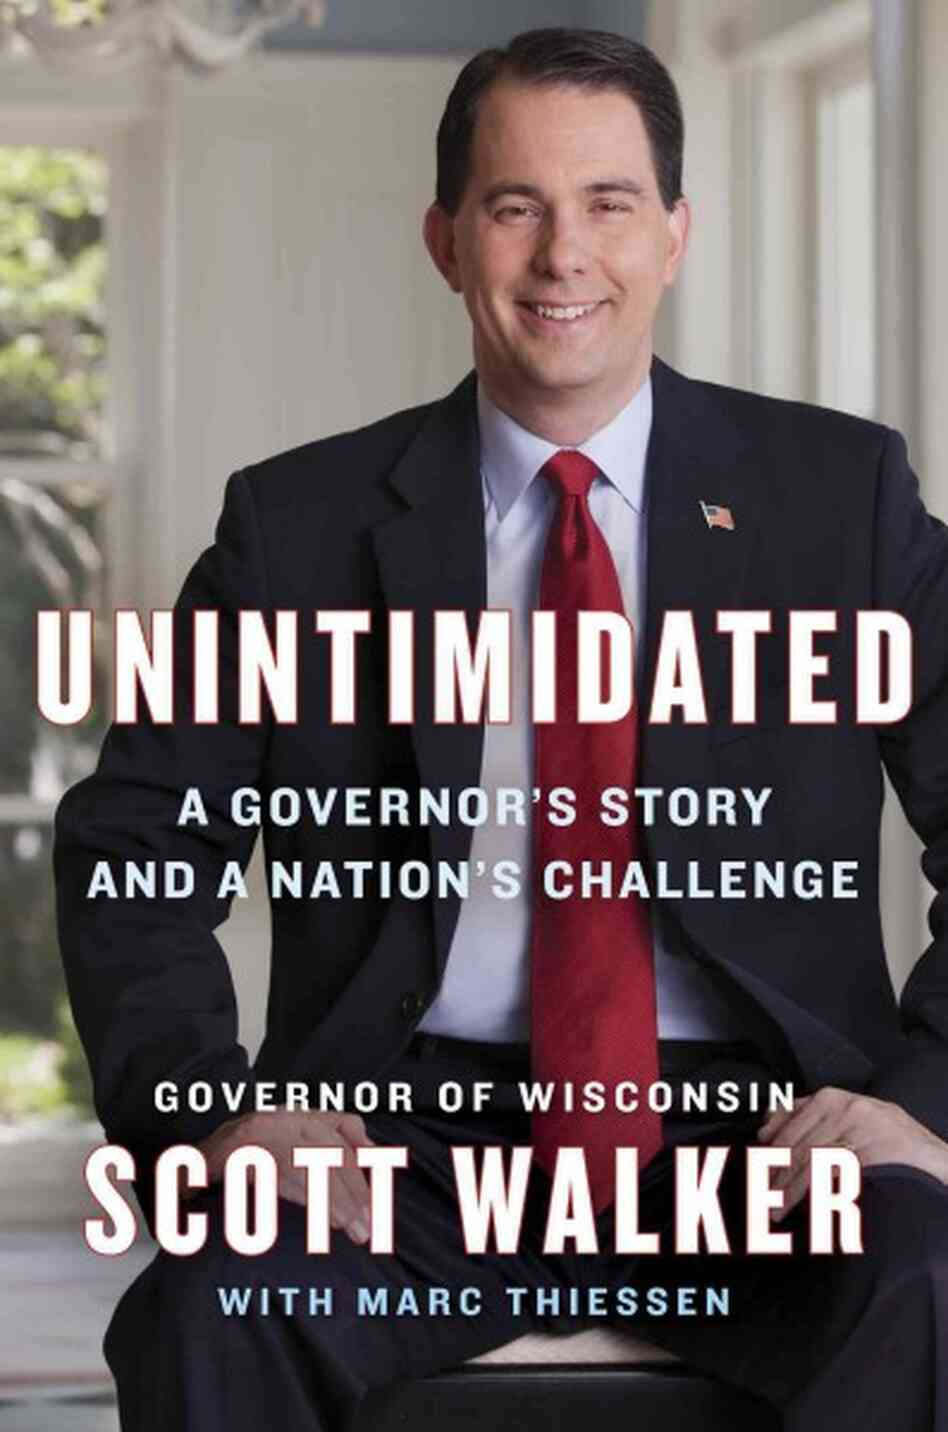 Unintimidated